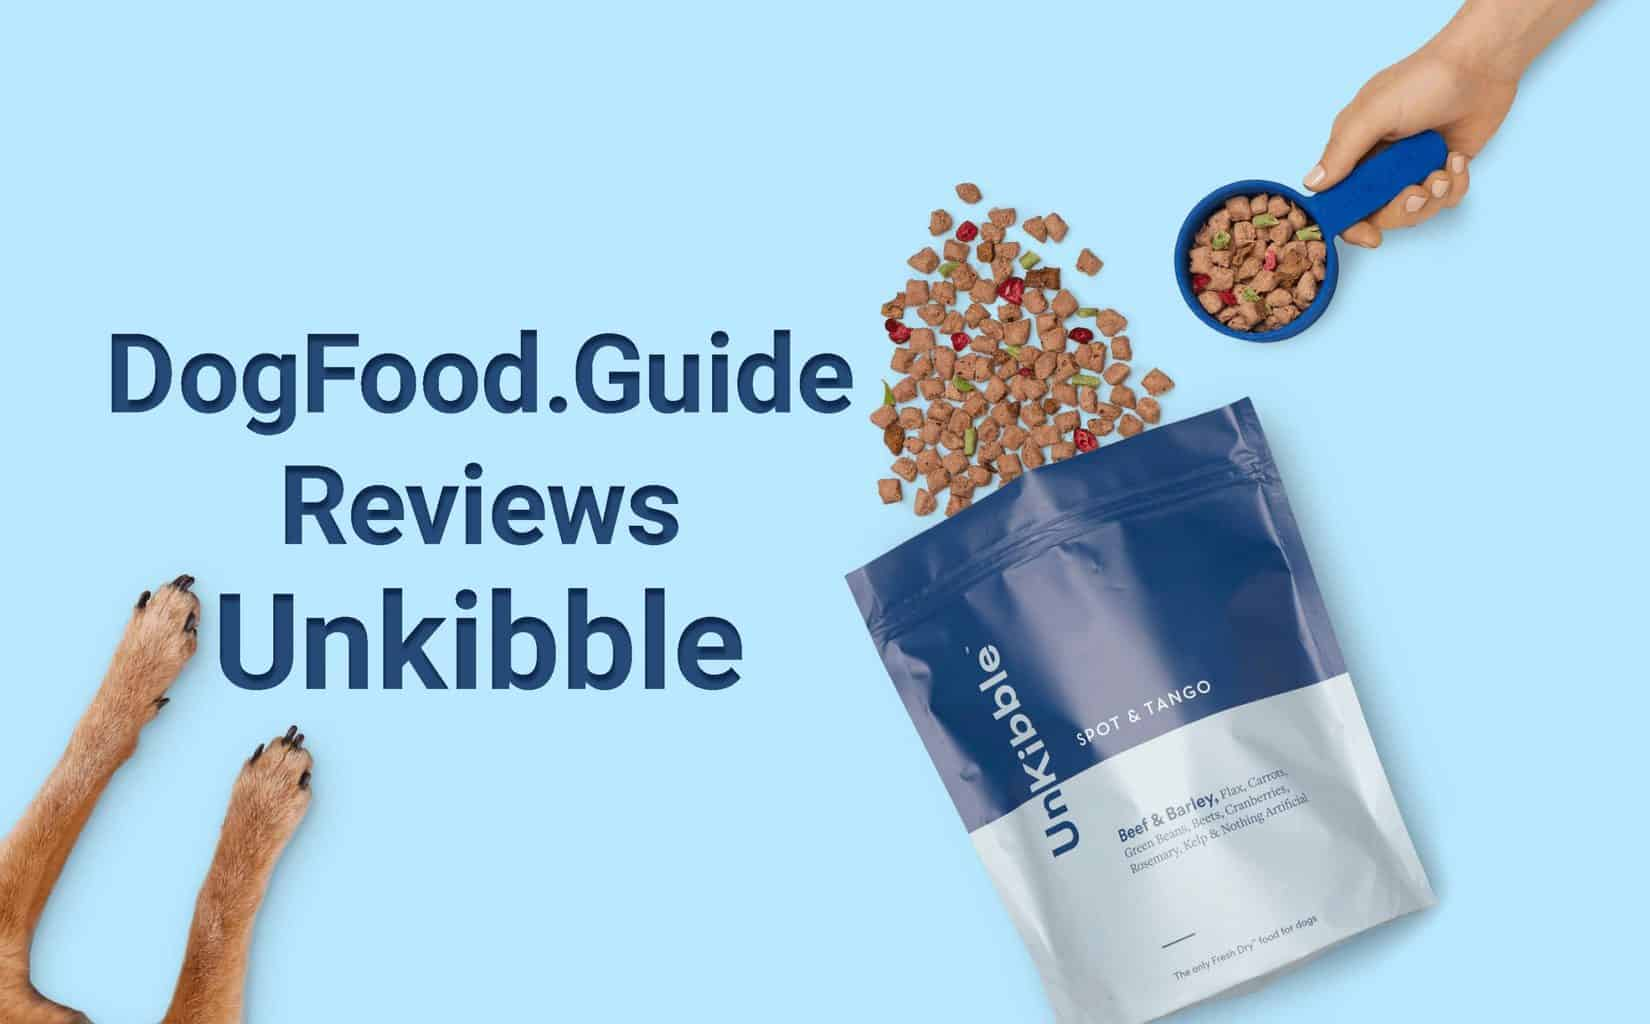 Unkibble dog food review